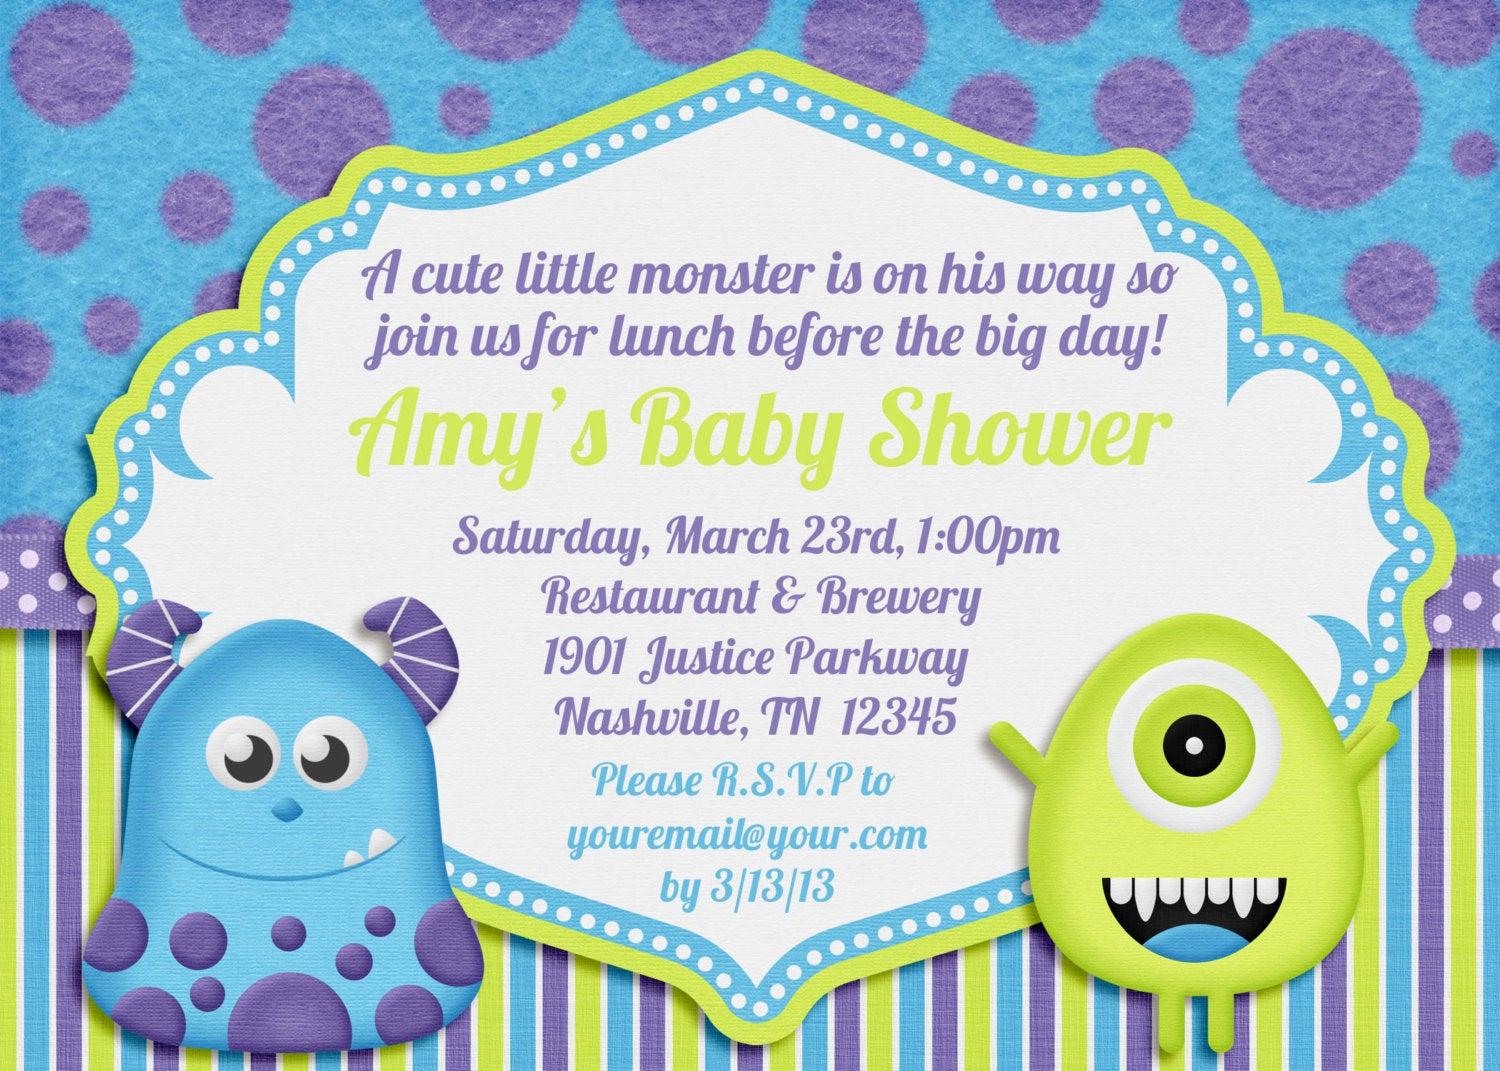 Monsters Inc Baby Shower Invitation Luxury Little Monster Baby Shower Invitation by Amandacreation On